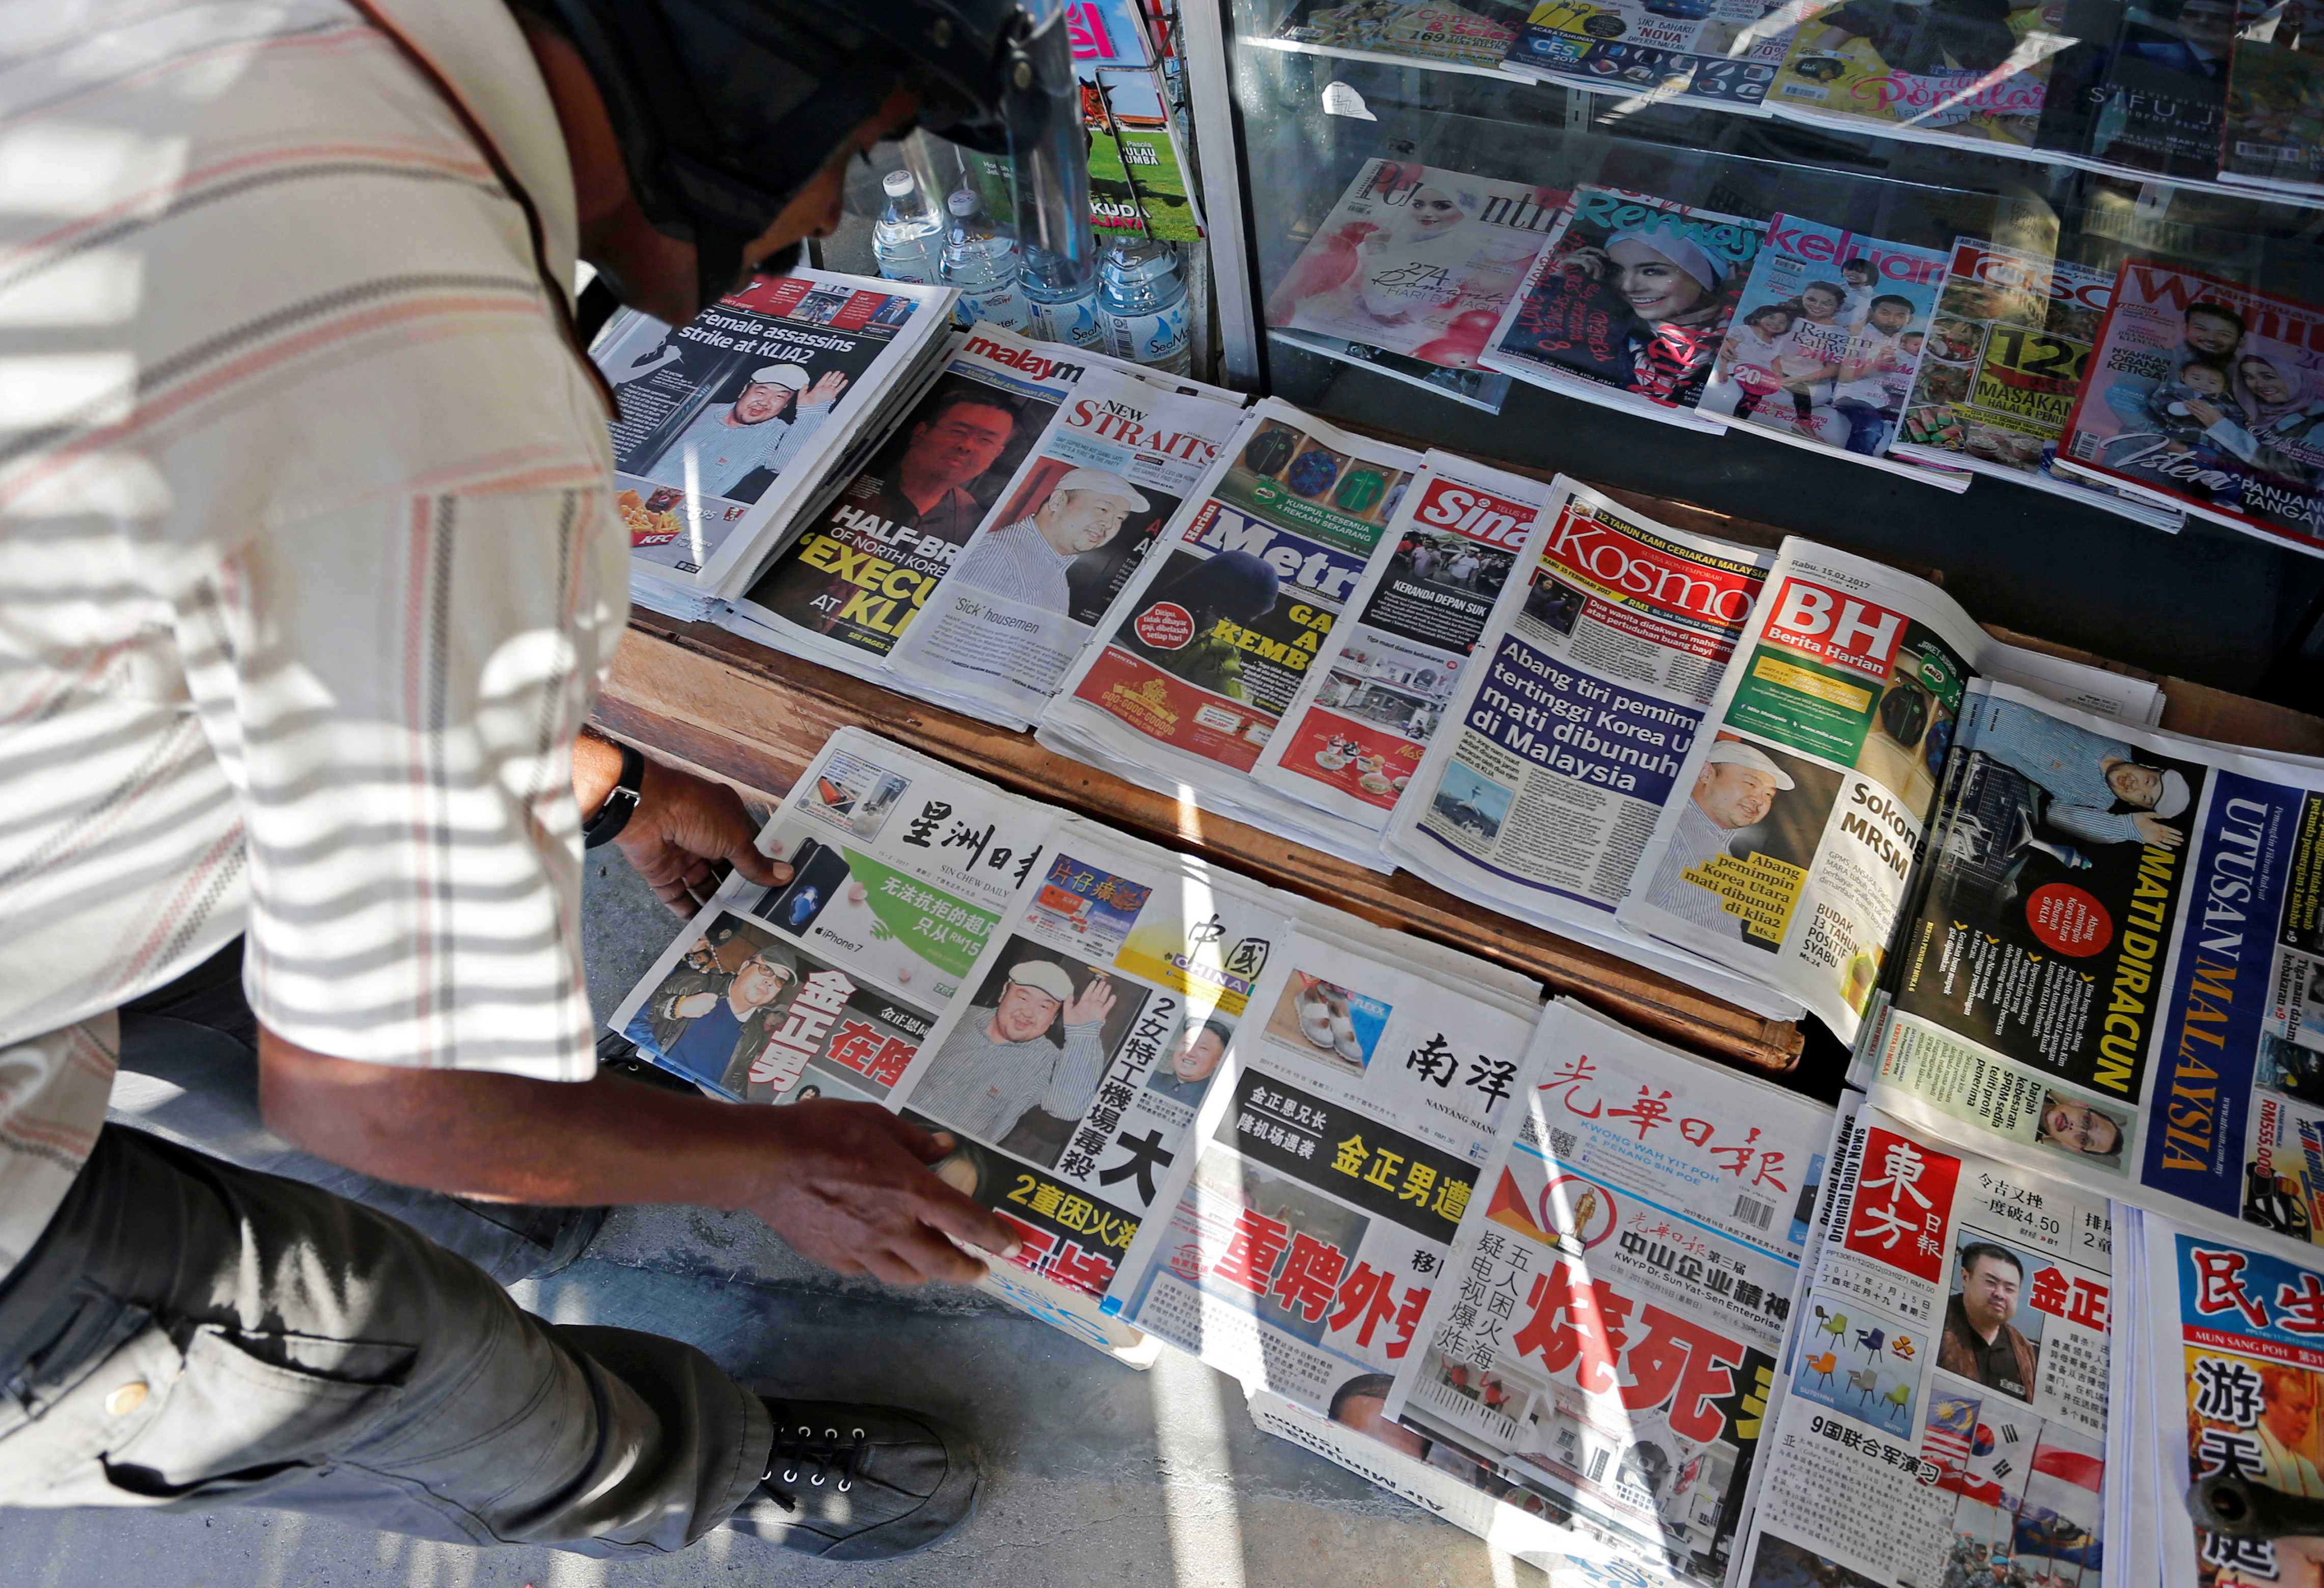 A newspaper vendor arranges newspapers showing front pages reporting the death of Kim Jong Nam, at a newsstand outside Kuala Lumpur on Feb. 15, 2017